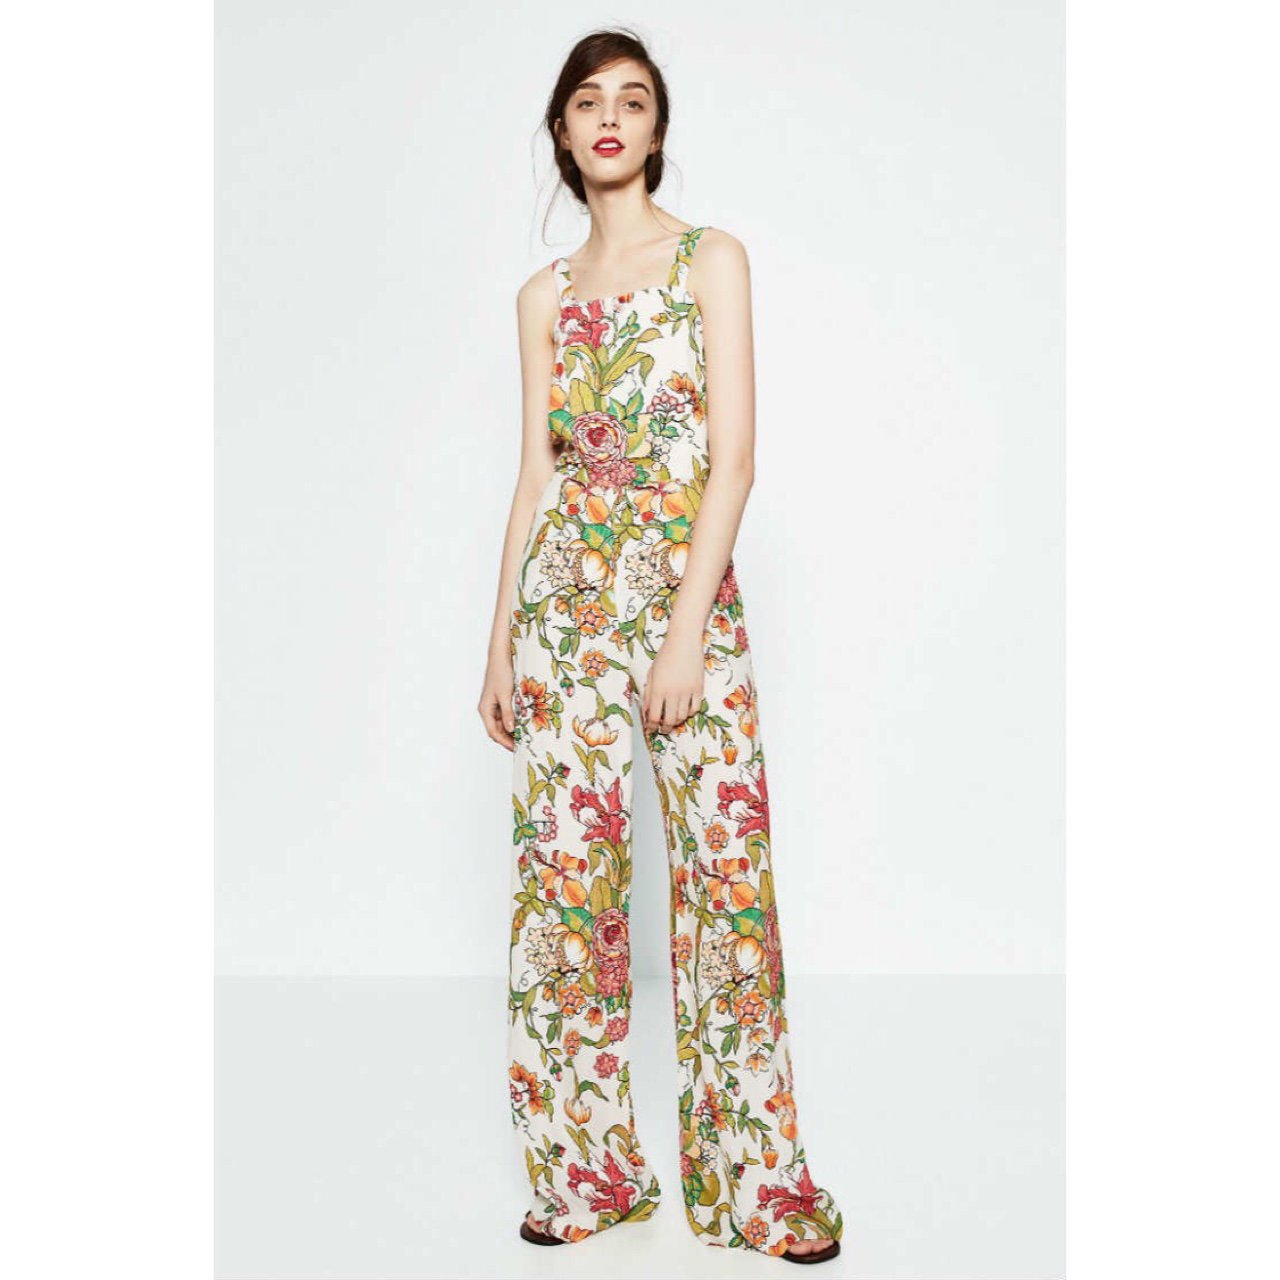 0df398485218 Zara floral jumpsuit - size small - worn once ✨ - Depop